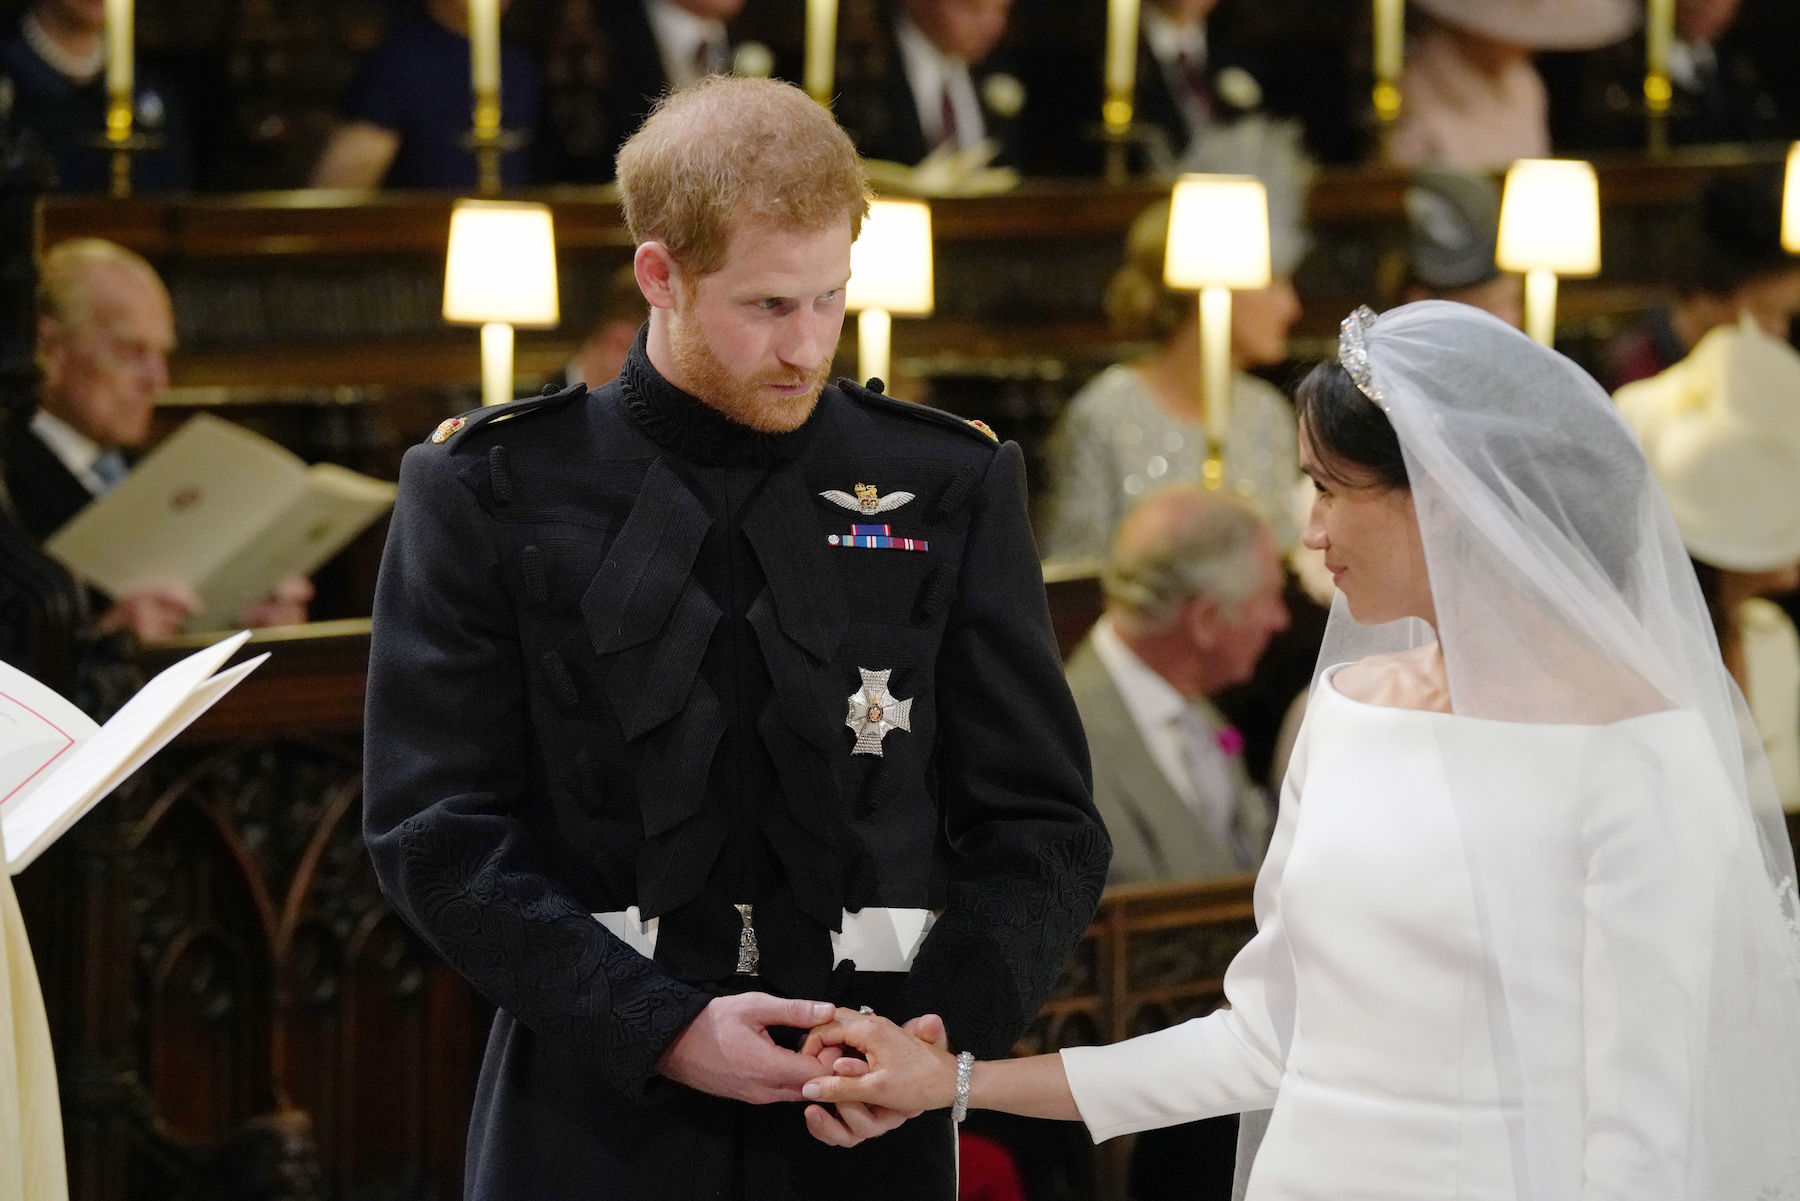 "<div class=""meta image-caption""><div class=""origin-logo origin-image wls""><span>wls</span></div><span class=""caption-text"">Britain's Prince Harry and Meghan Markle stand together hand in hand at the High Altar during their wedding ceremony in St George's Chapel. (Jonathan Brady/AFP/Getty Images)</span></div>"